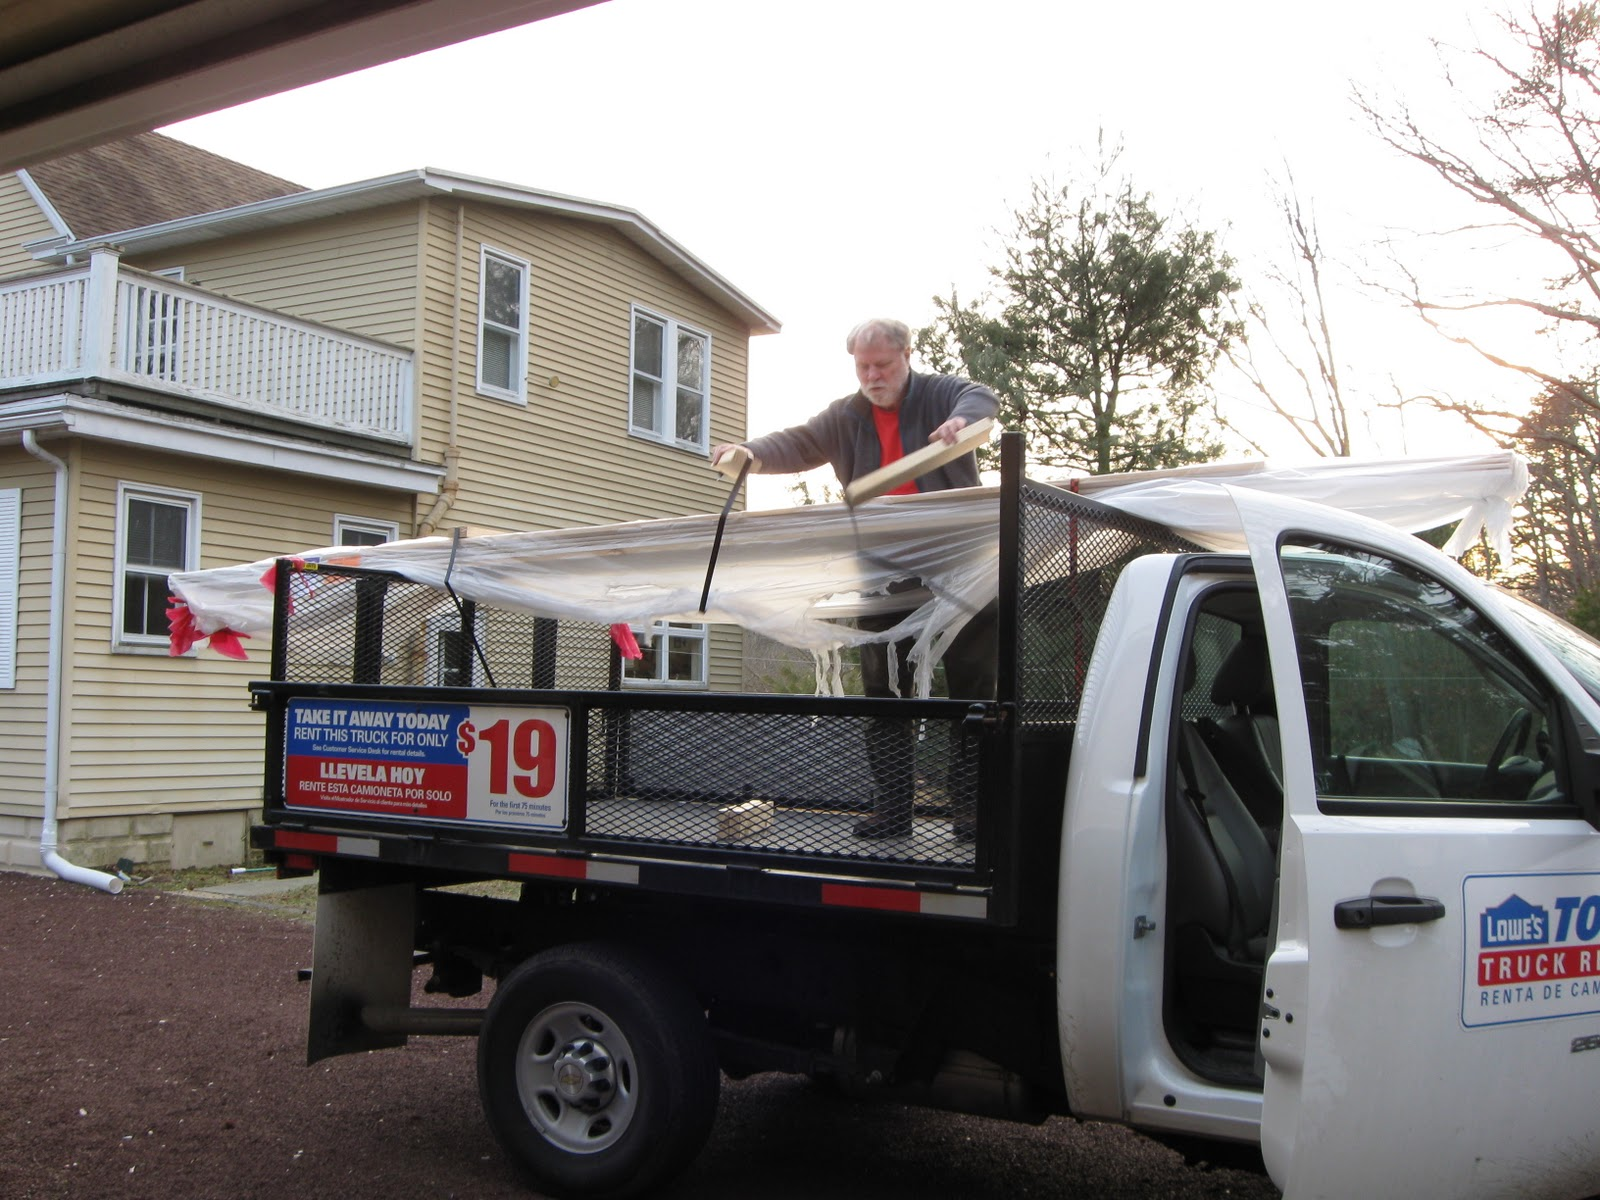 Lowes flatbed truck rental